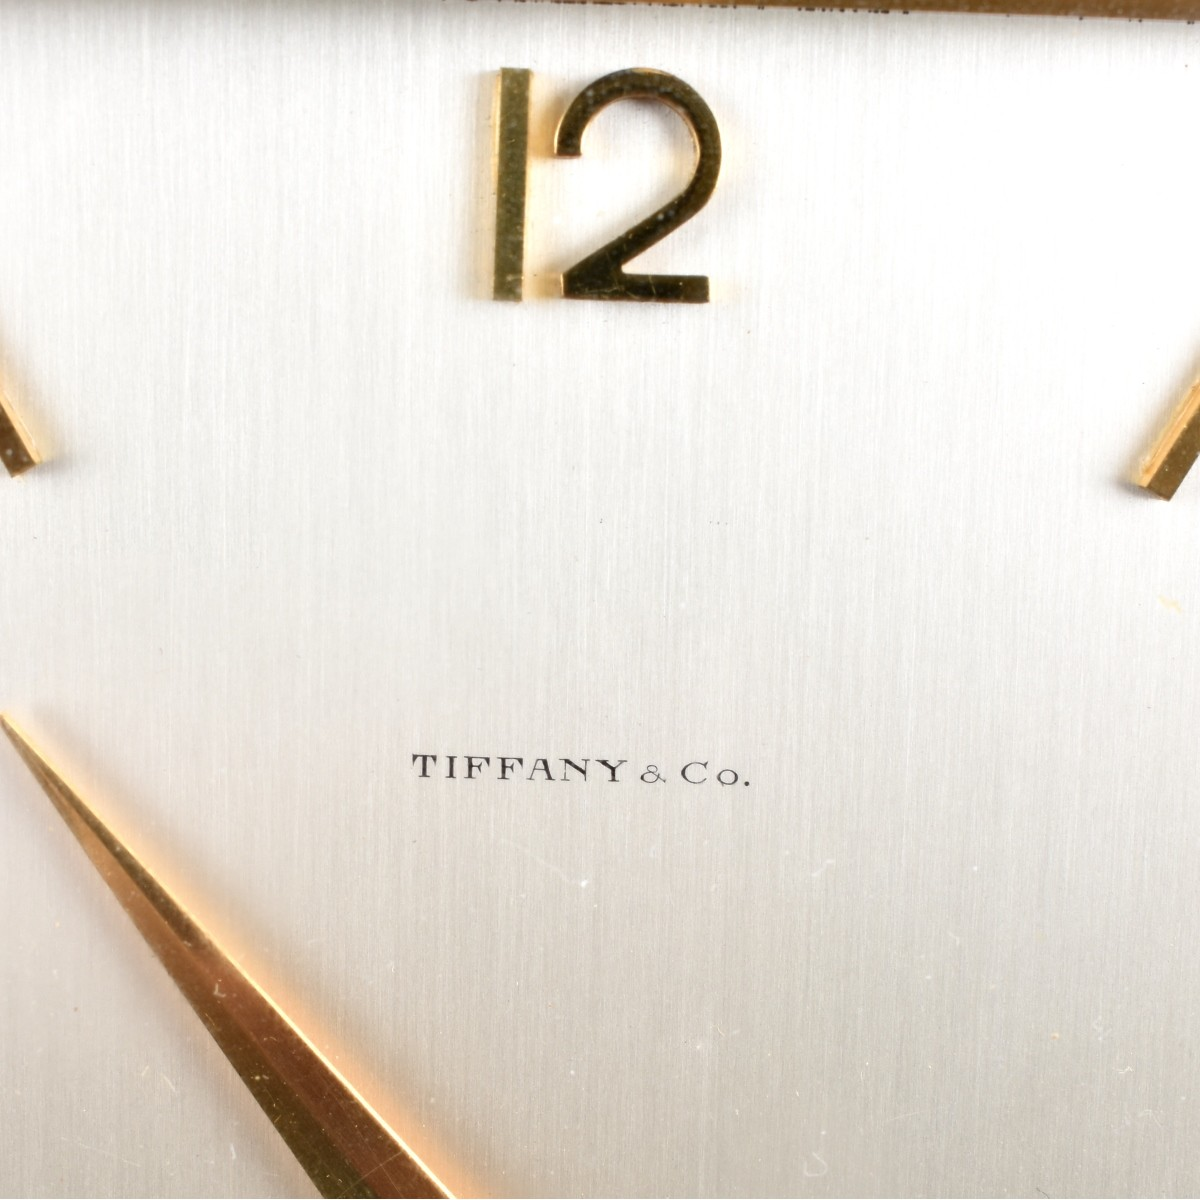 Tiffany & Co. Desk Clock